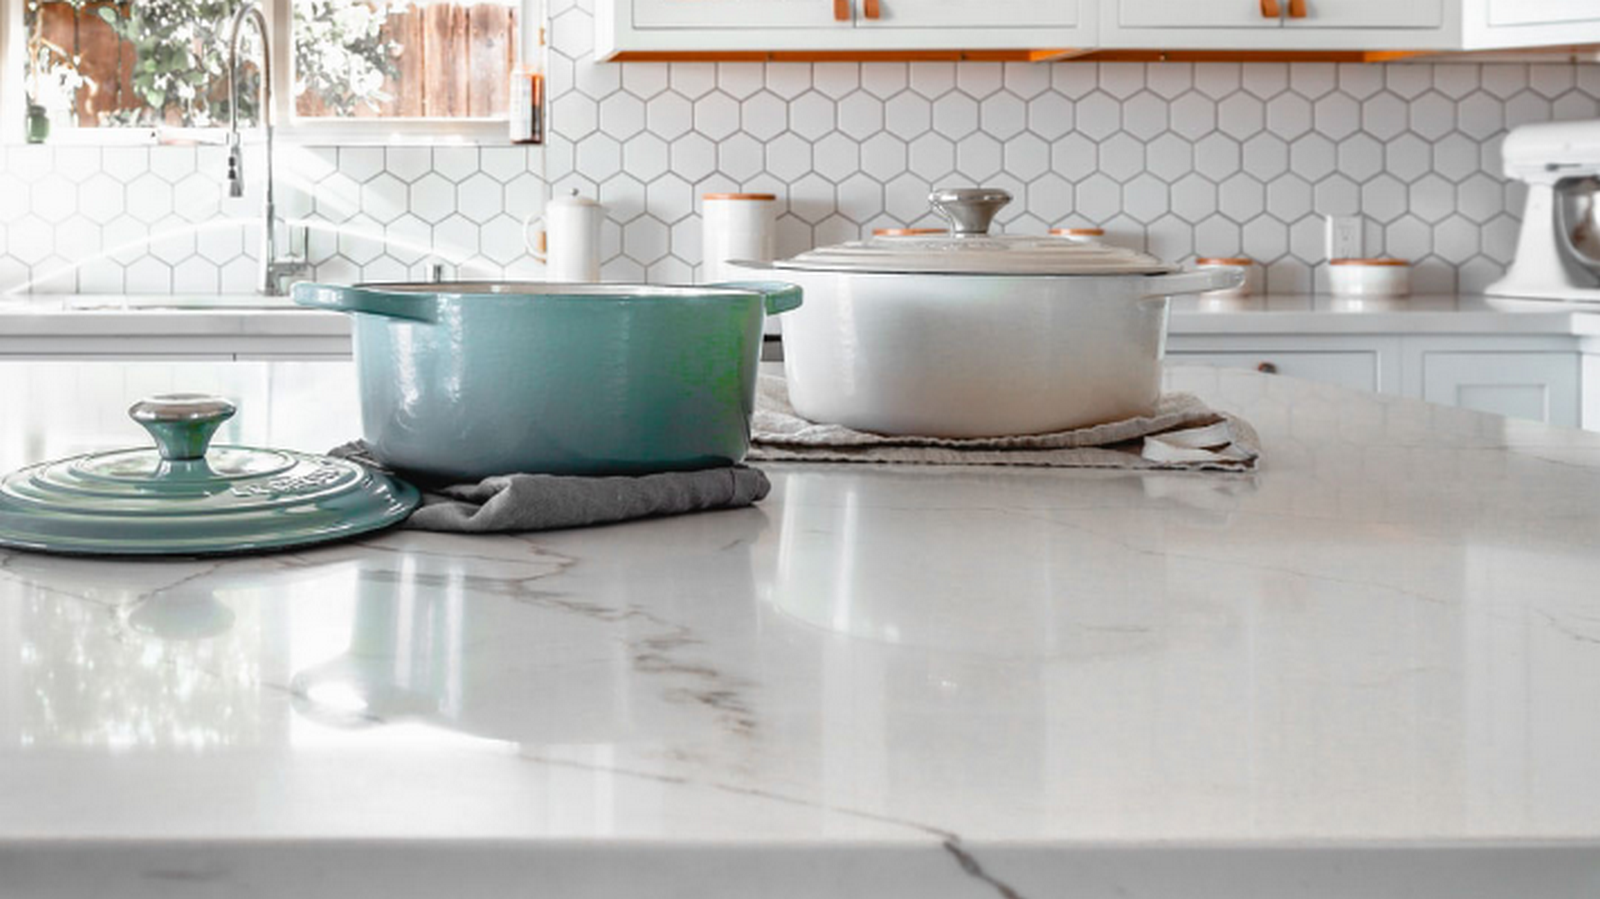 10 Kitchen details everyone must know about while redesigning - Sheet3